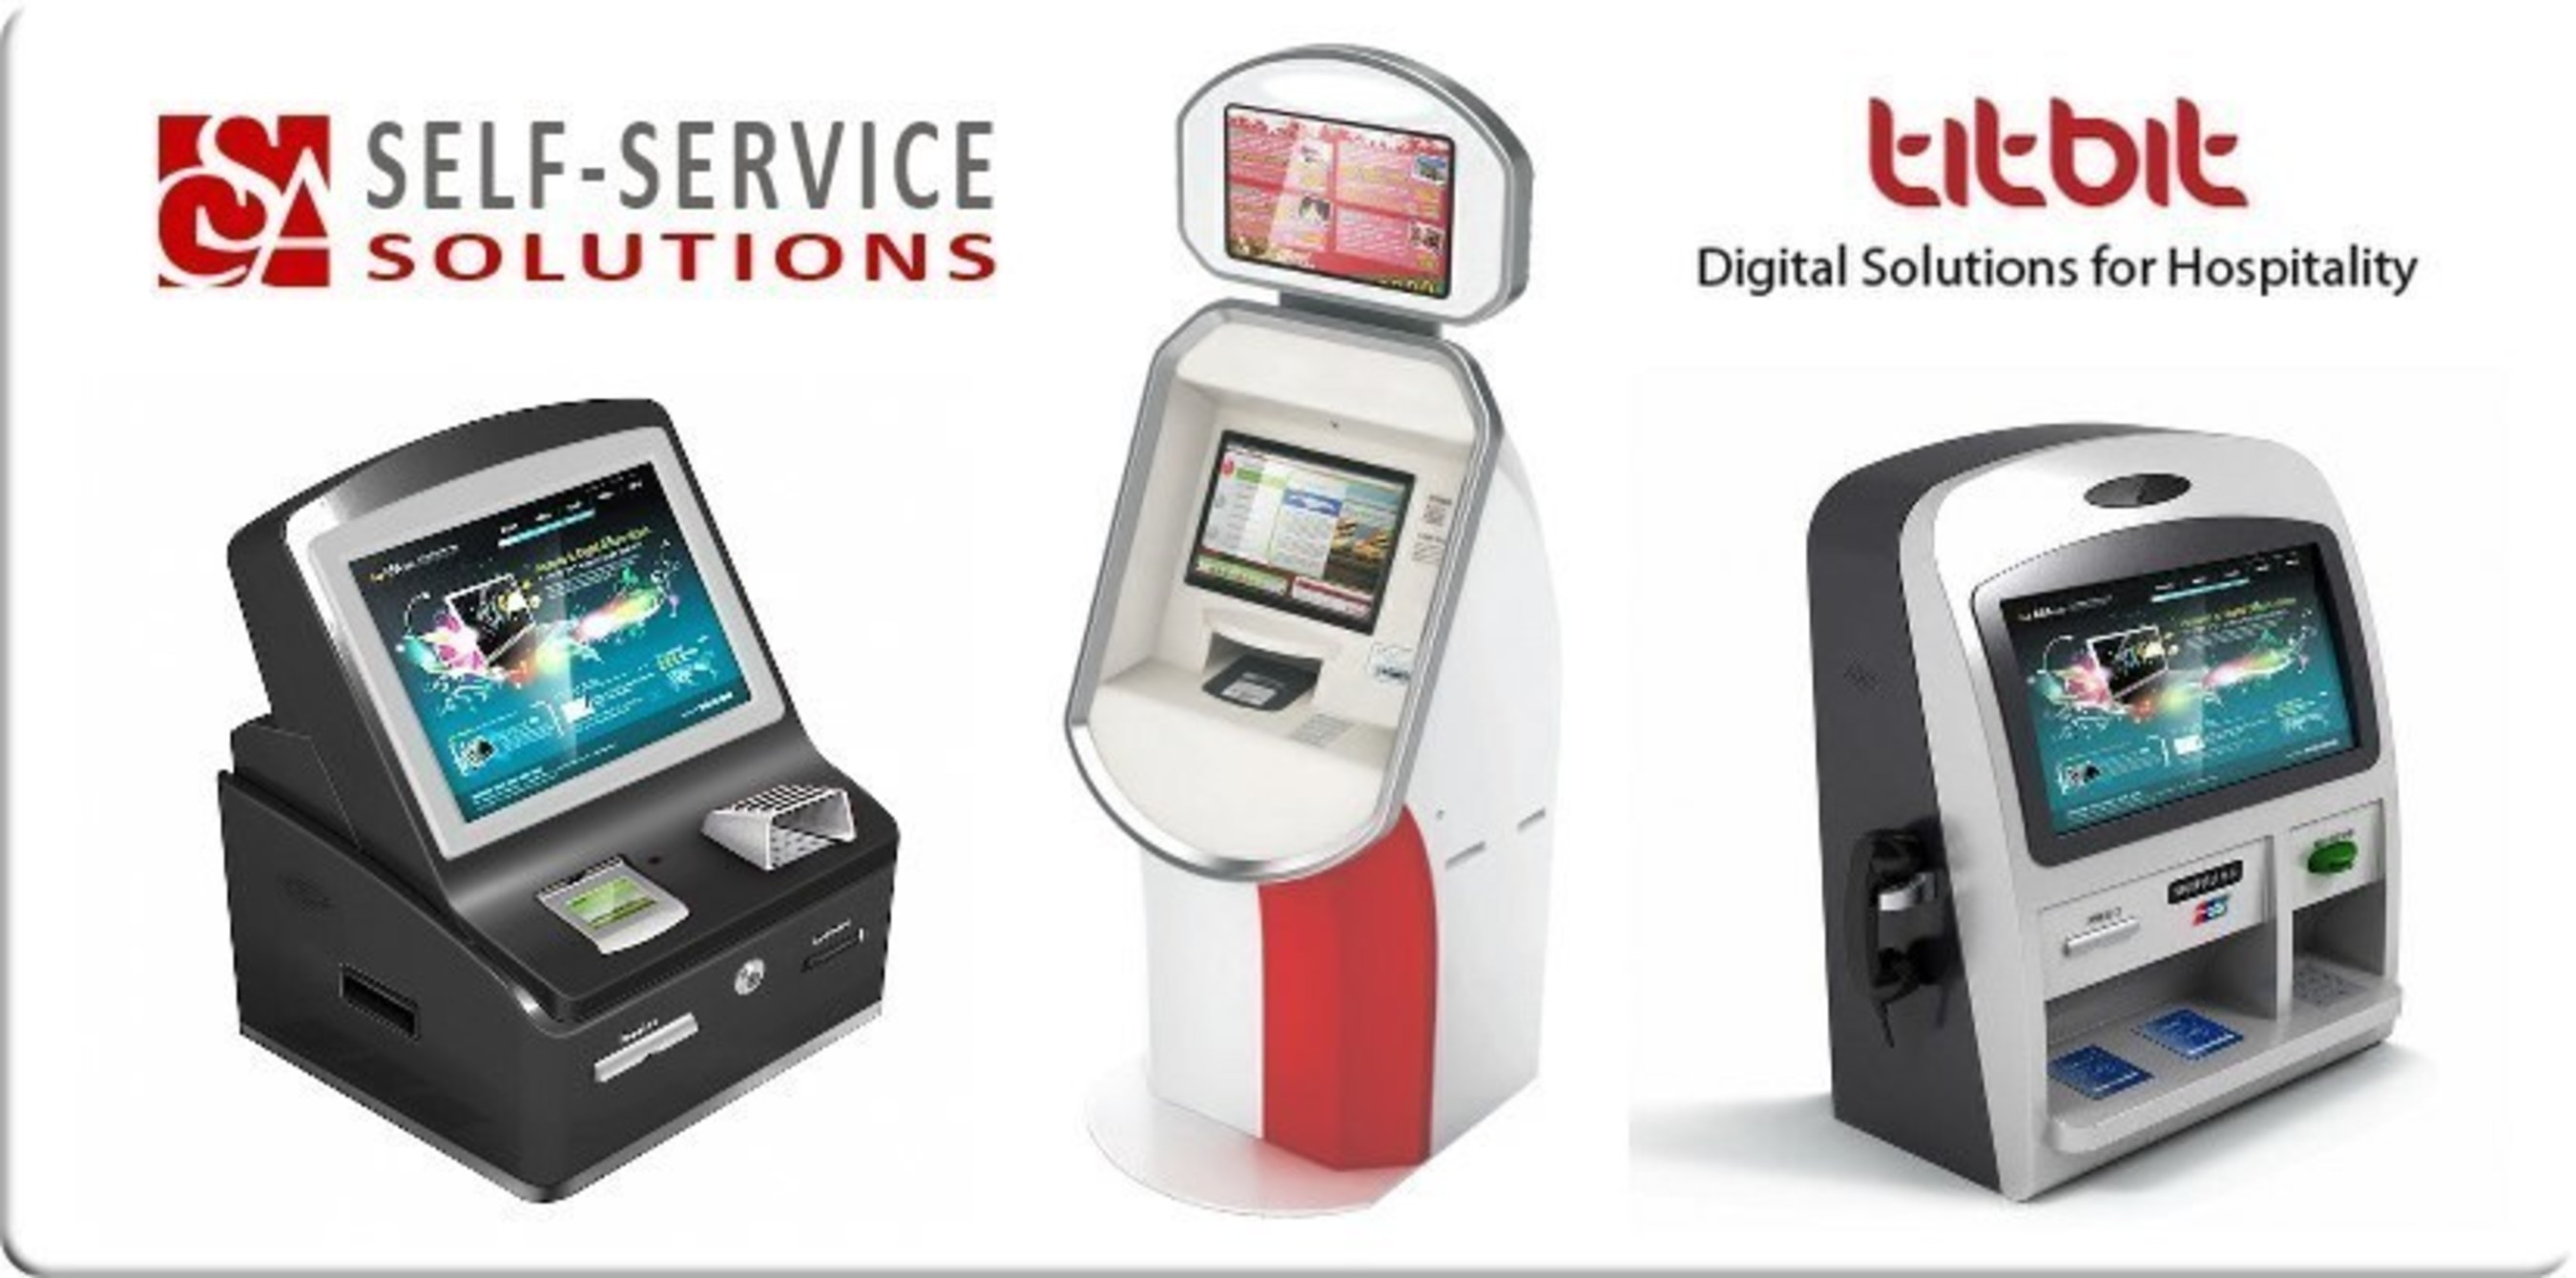 Fast Food Businesses Can Now Automate with Self-Service Ordering & Payment Kiosks without the High Upfront Capital Expense